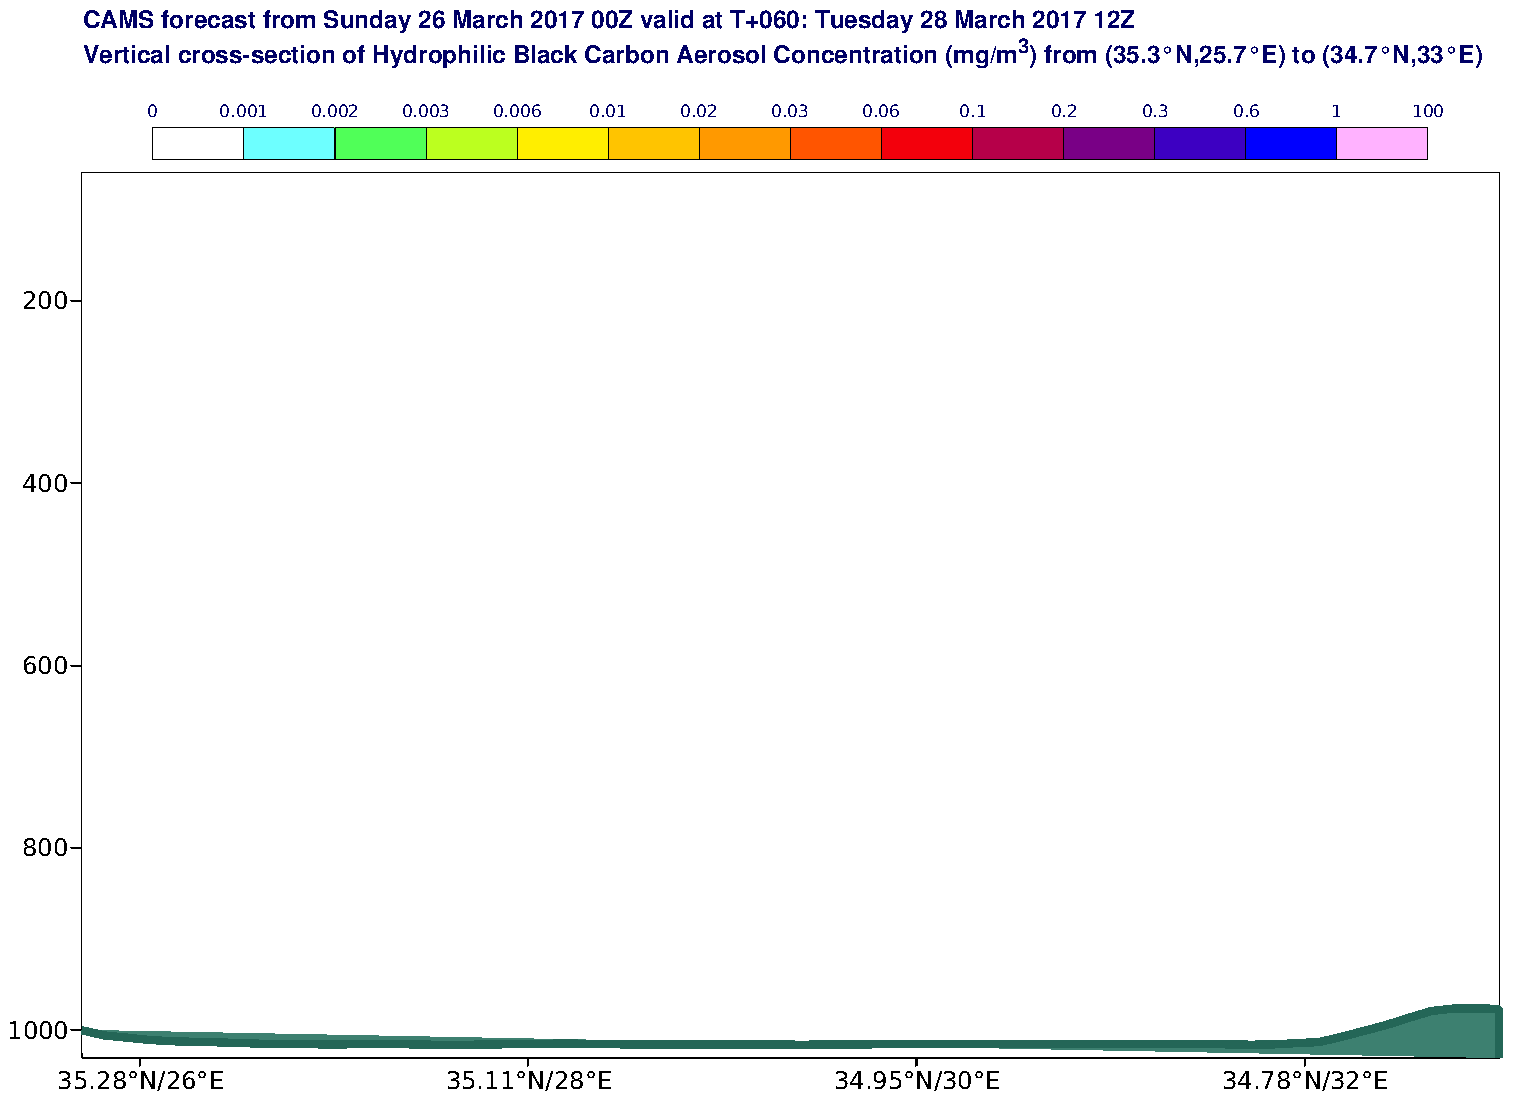 Vertical cross-section of Hydrophilic Black Carbon Aerosol Concentration (mg/m3) valid at T60 - 2017-03-28 12:00